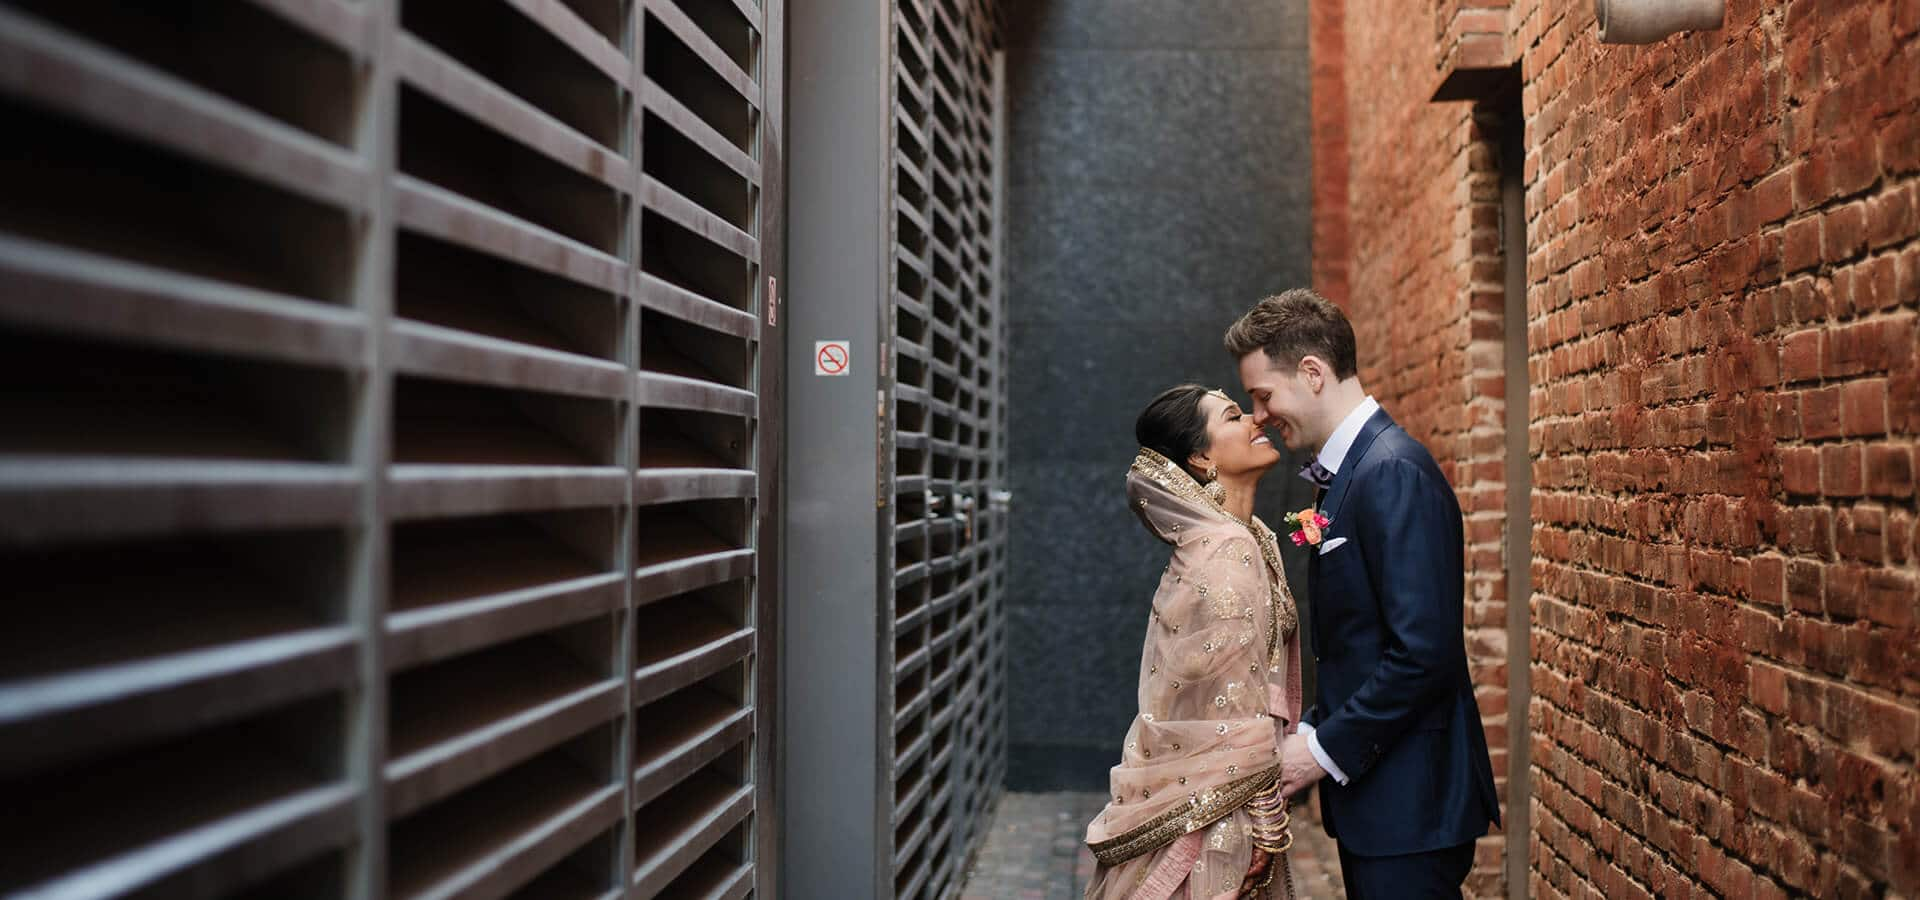 Hero image for Kamini and Glen's Stunning Multicultural Wedding at The Fermenting Cellar